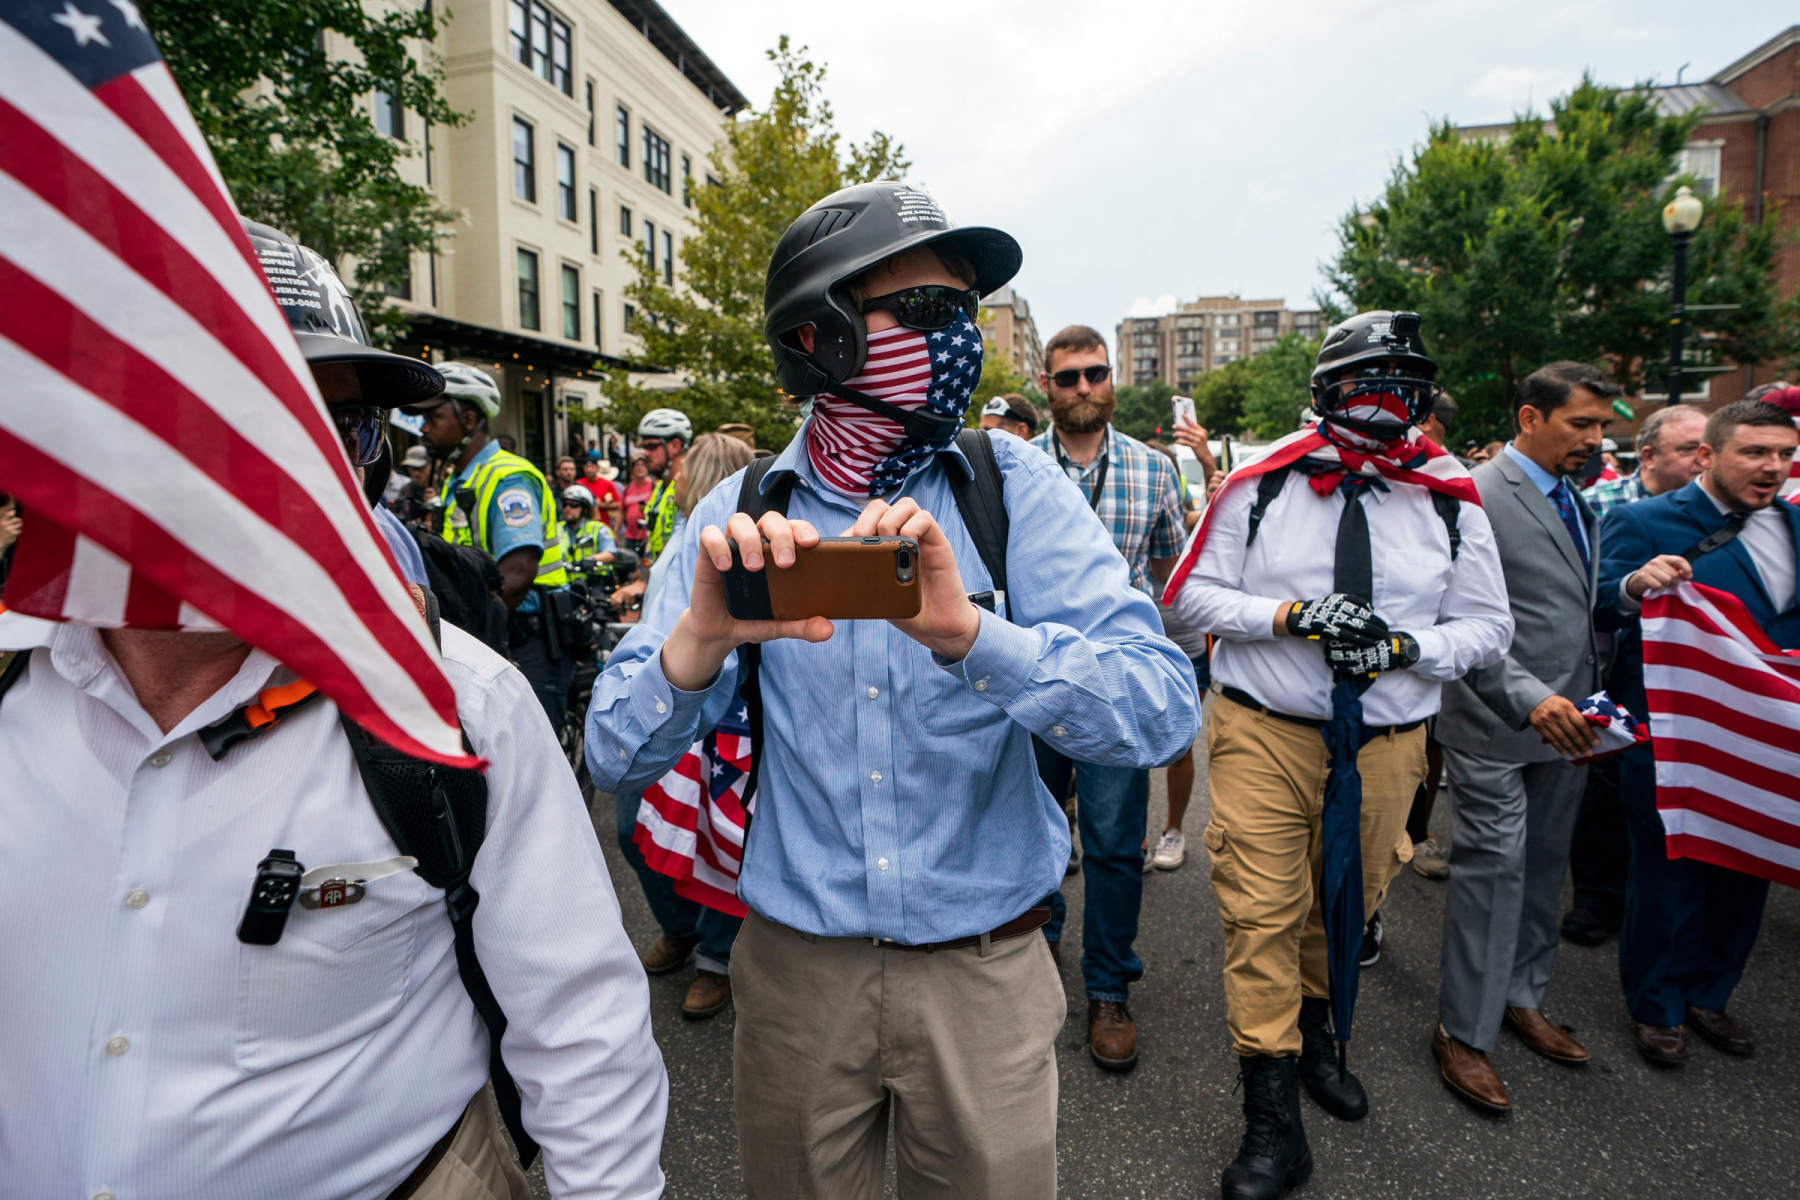 White supremacists and members of the alt-right march to the White House on the anniversary of last year's 'Unite the Right' rally in Washington, DC, USA, 12 August 2018. On 12 August 2017, a bloody clash between white supremacists and counterprotestors in Charlottesville, Virginia left three people dead and dozens injured.White supremacists march on anniversary of Unite the Right rally in DC, Washington, USA - 12 Aug 2018